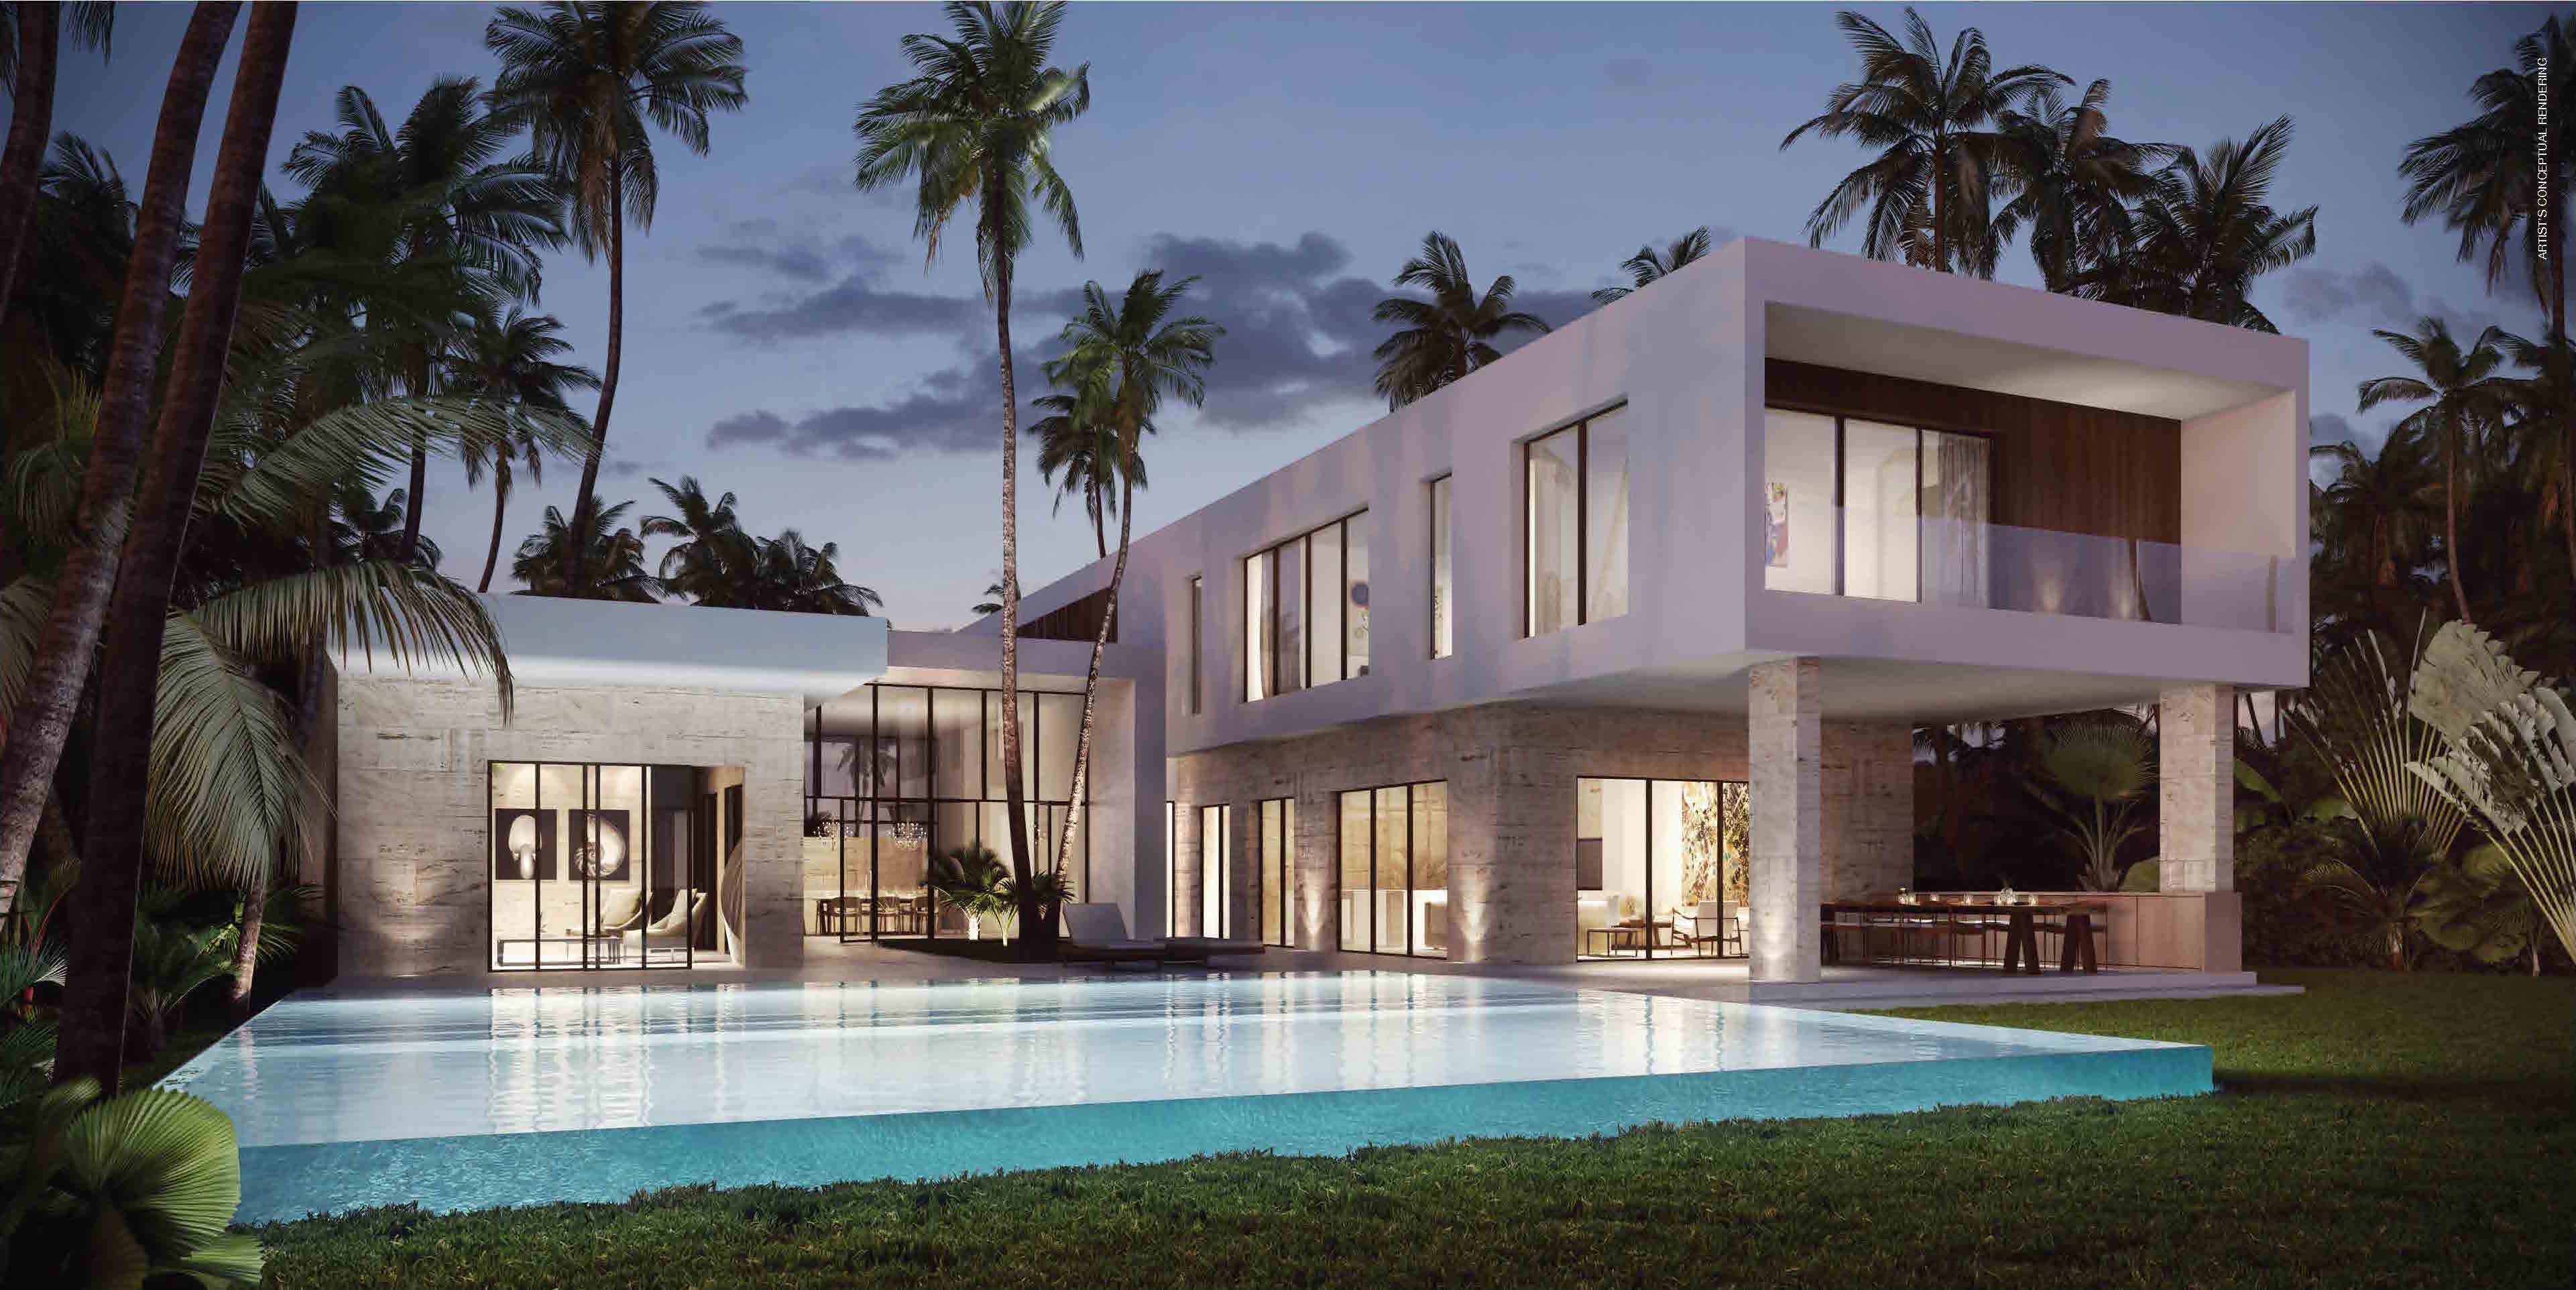 Botaniko weston ultra modern luxury in weston florida for Ultra modern houses for sale